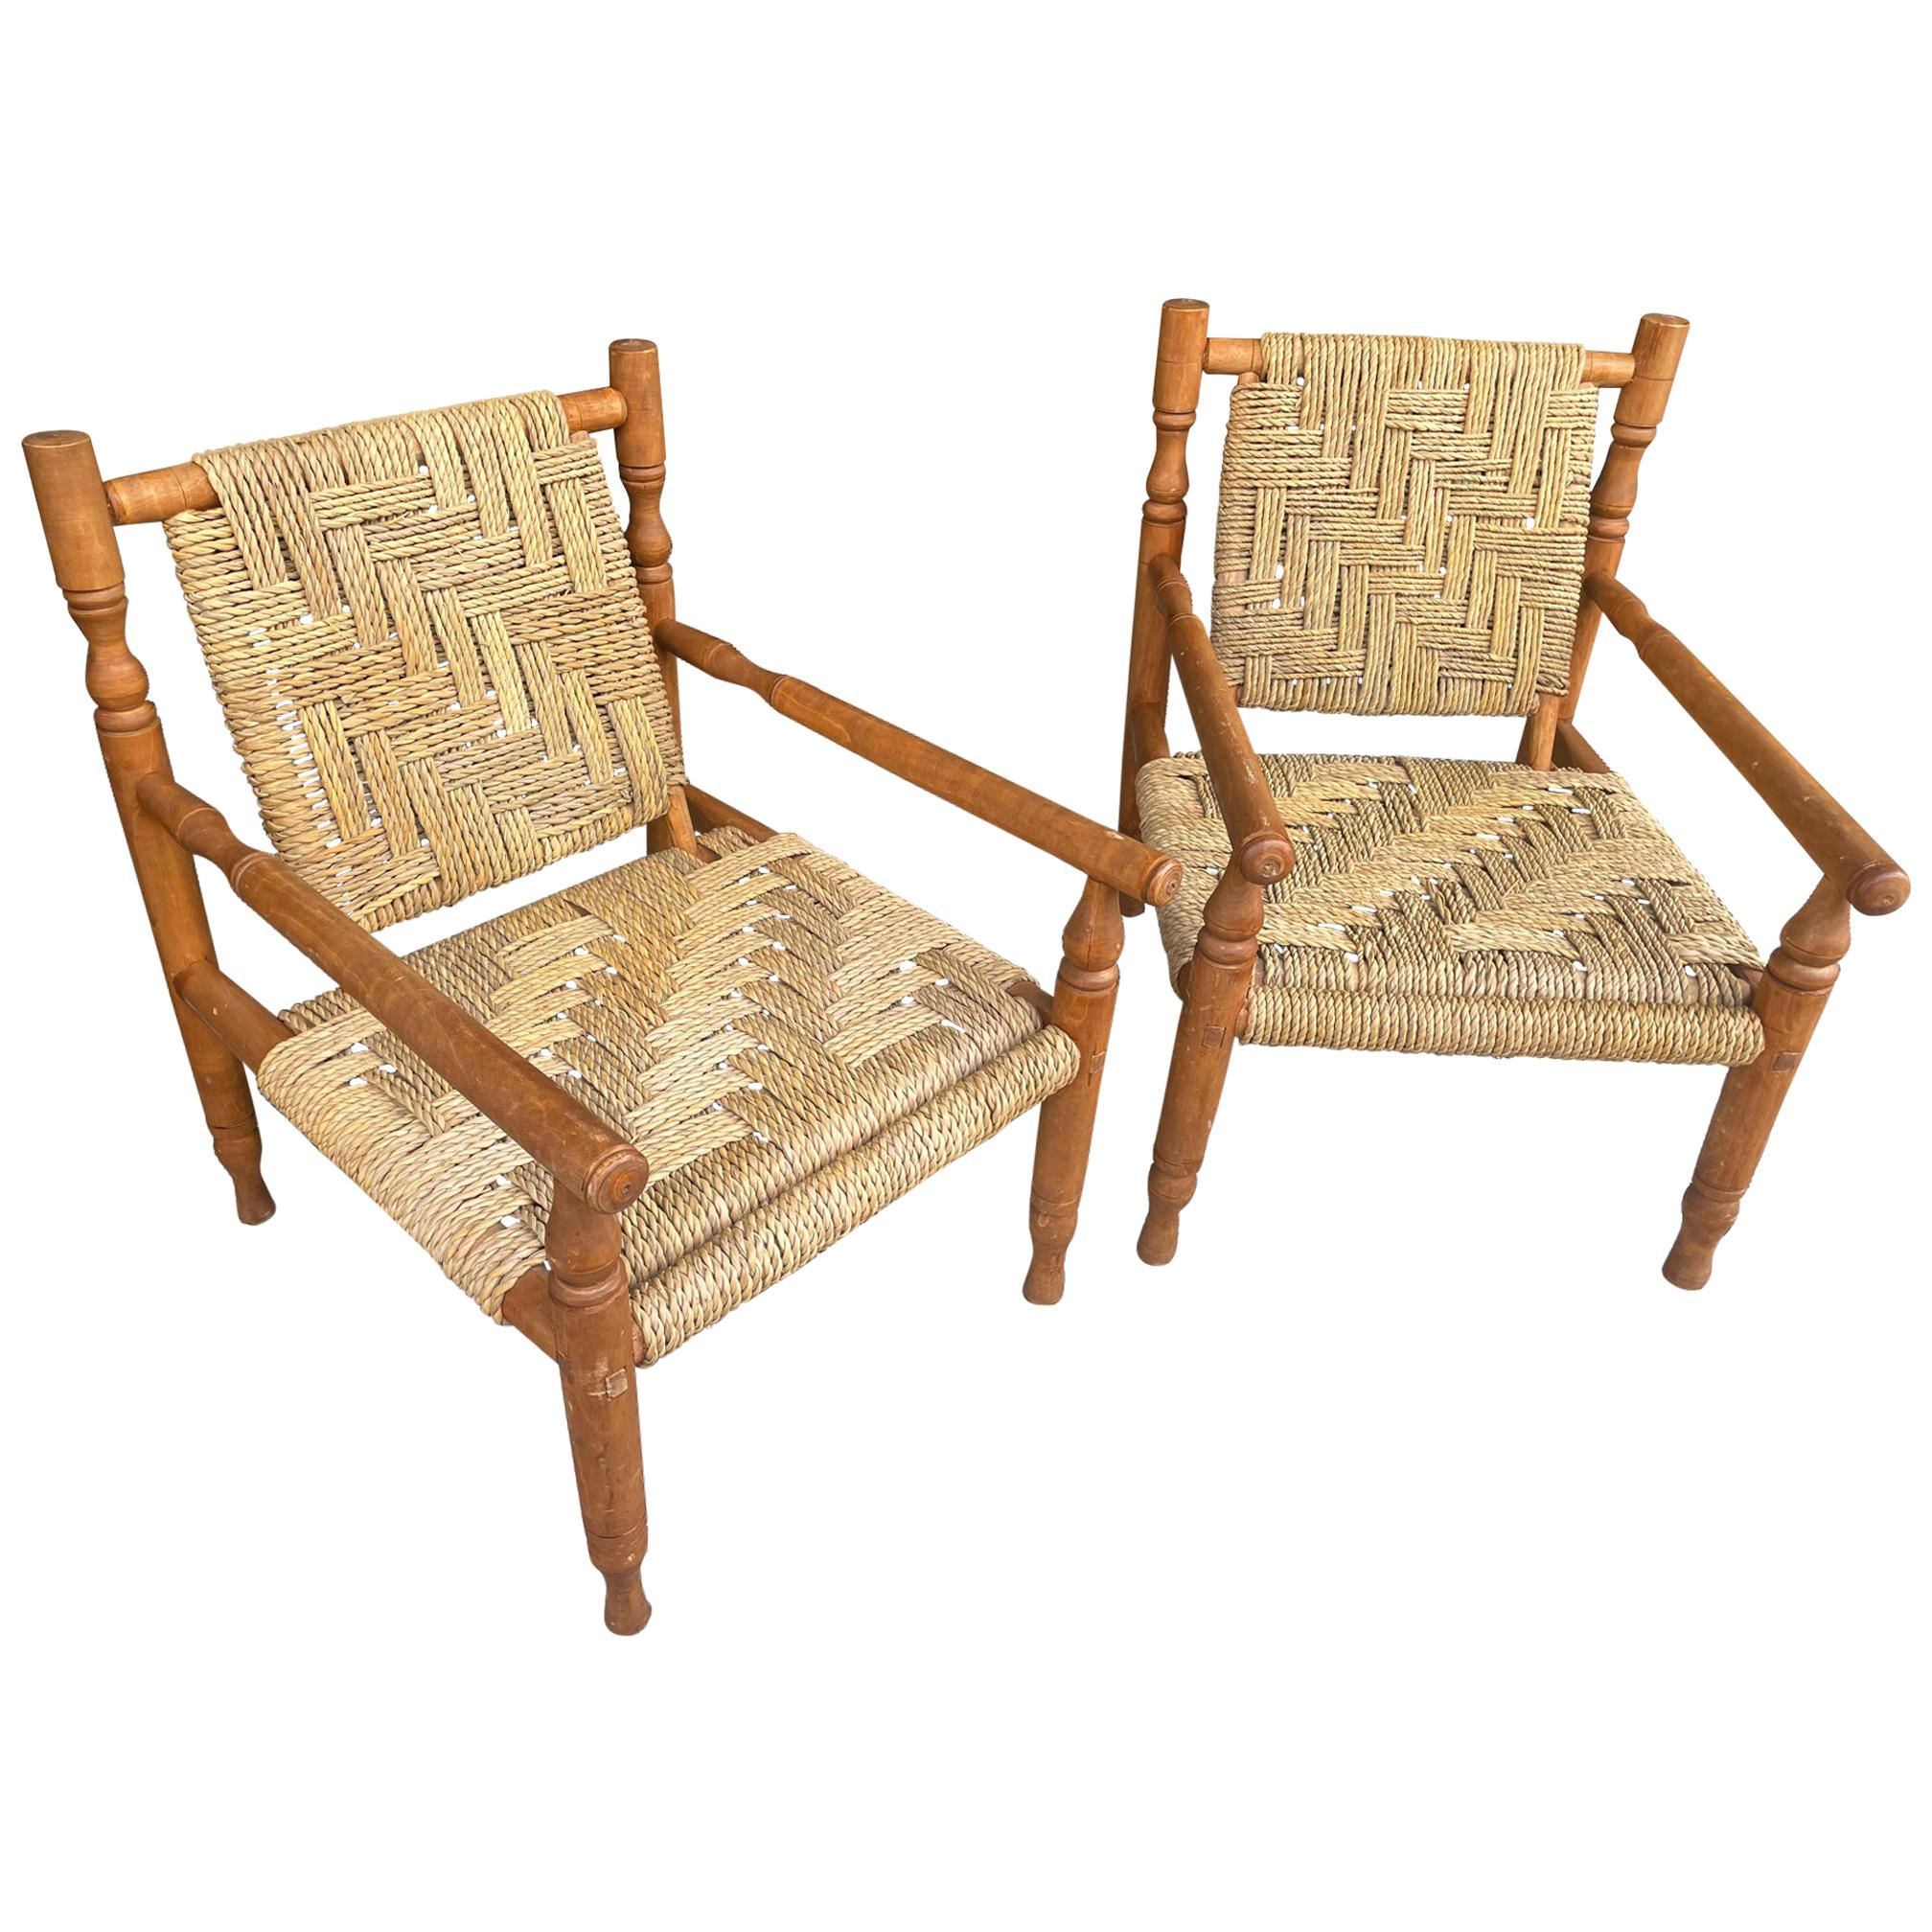 Wonderful Pair of 1950s French Rope and Wood Chairs by Audoux and Minet